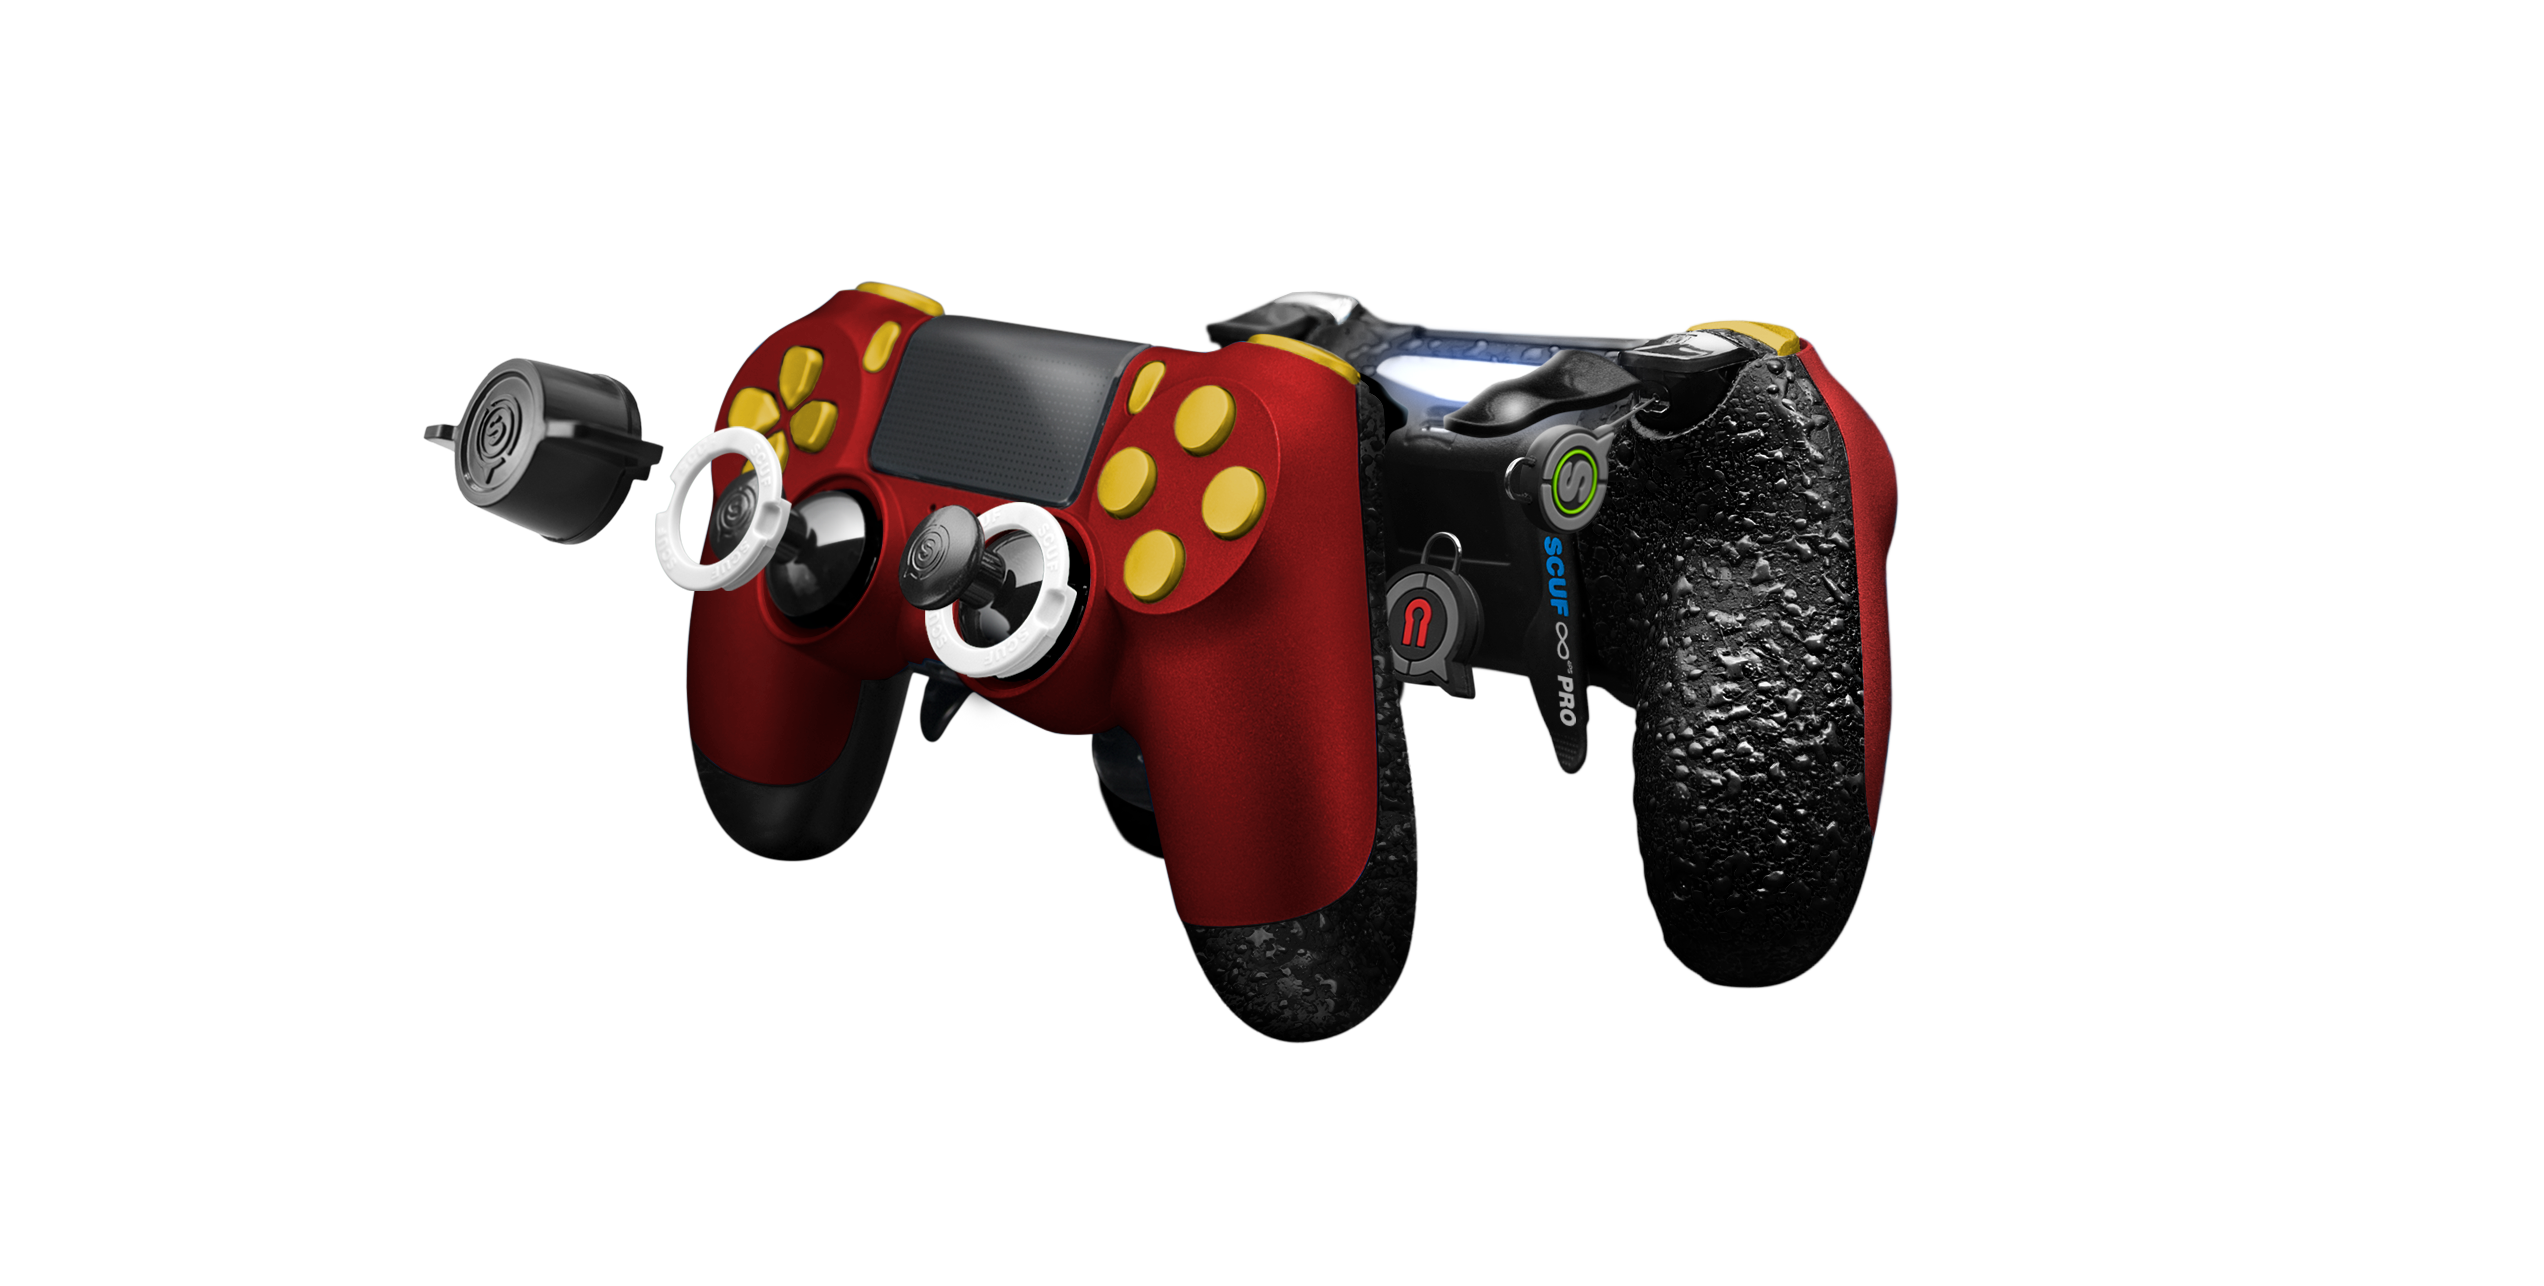 Scuf unveils two new PS4 controllers